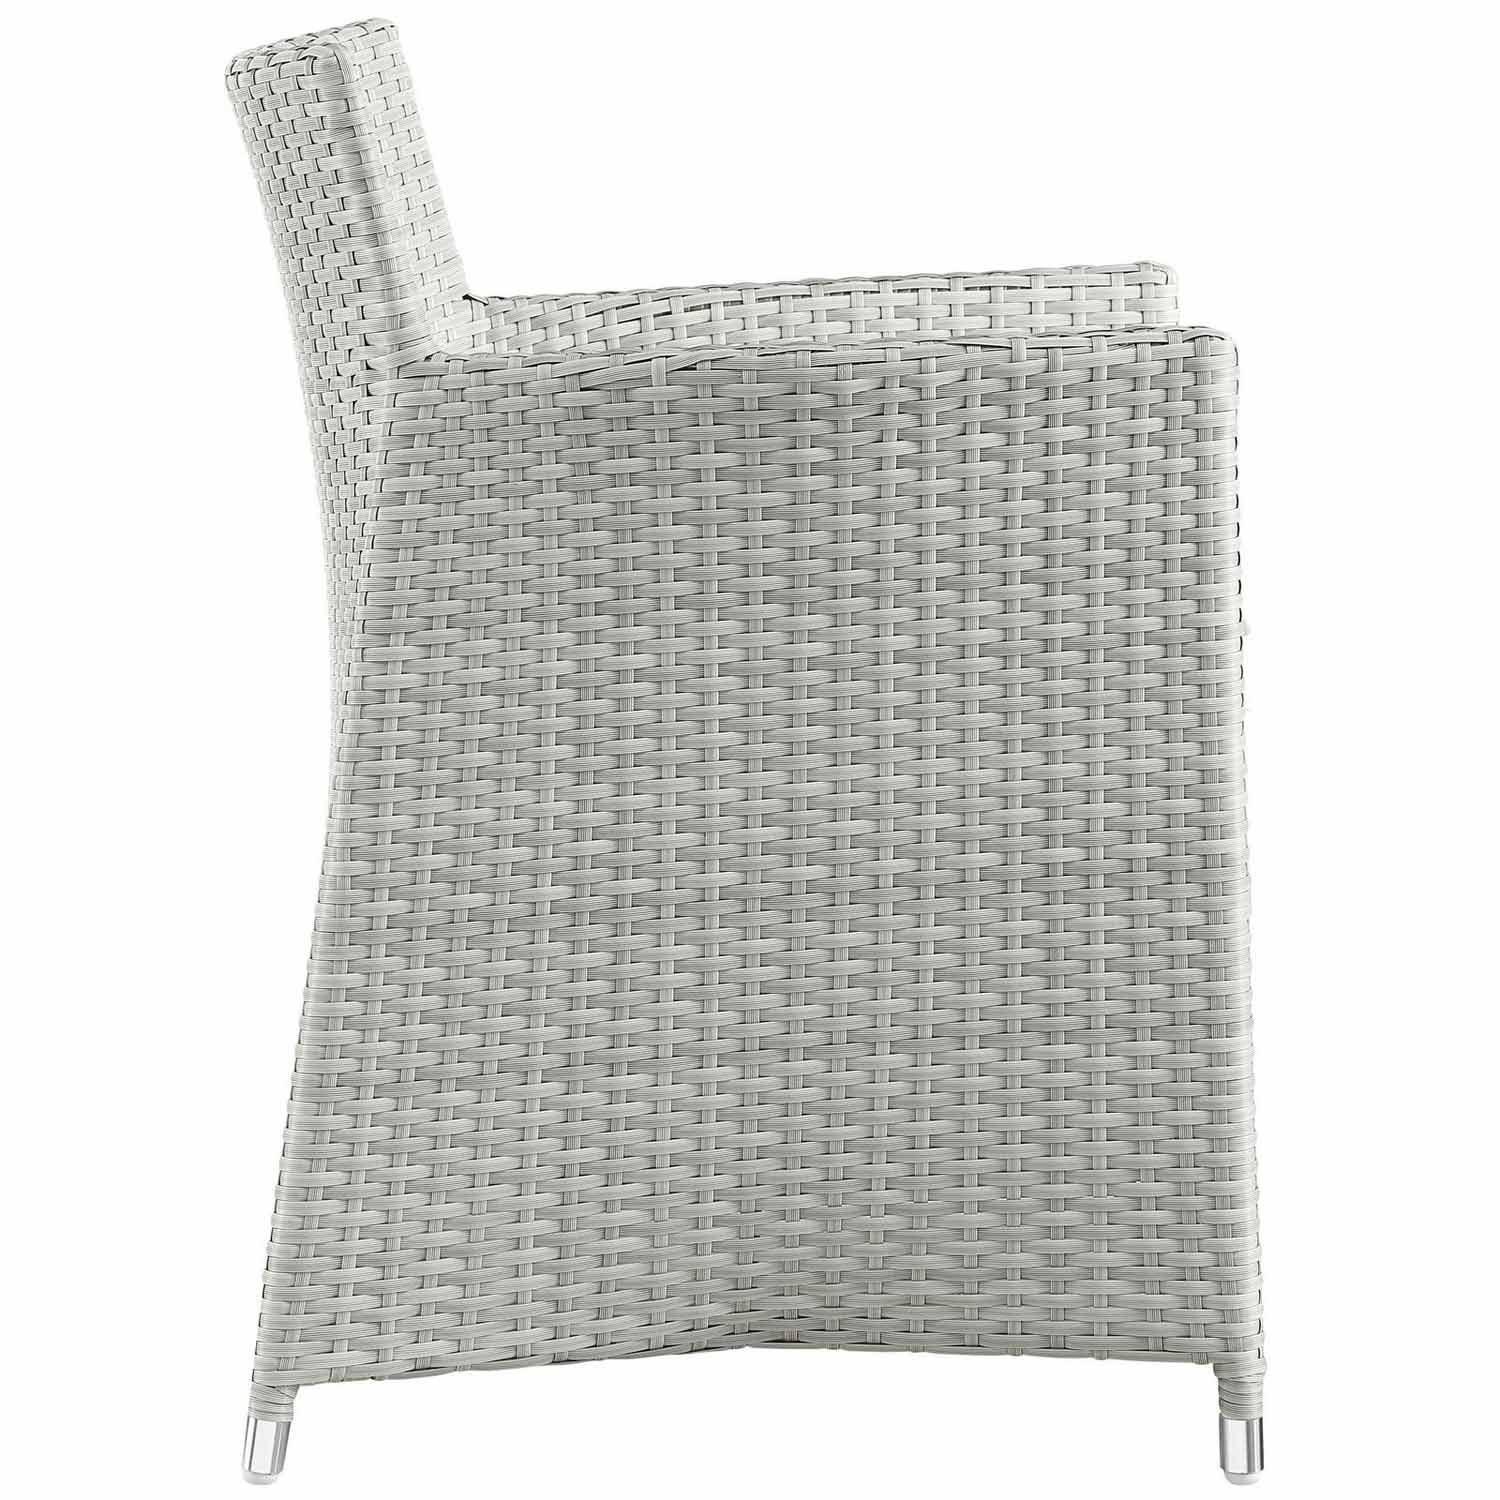 Modway Junction Outdoor Patio Armchair - Gray/White